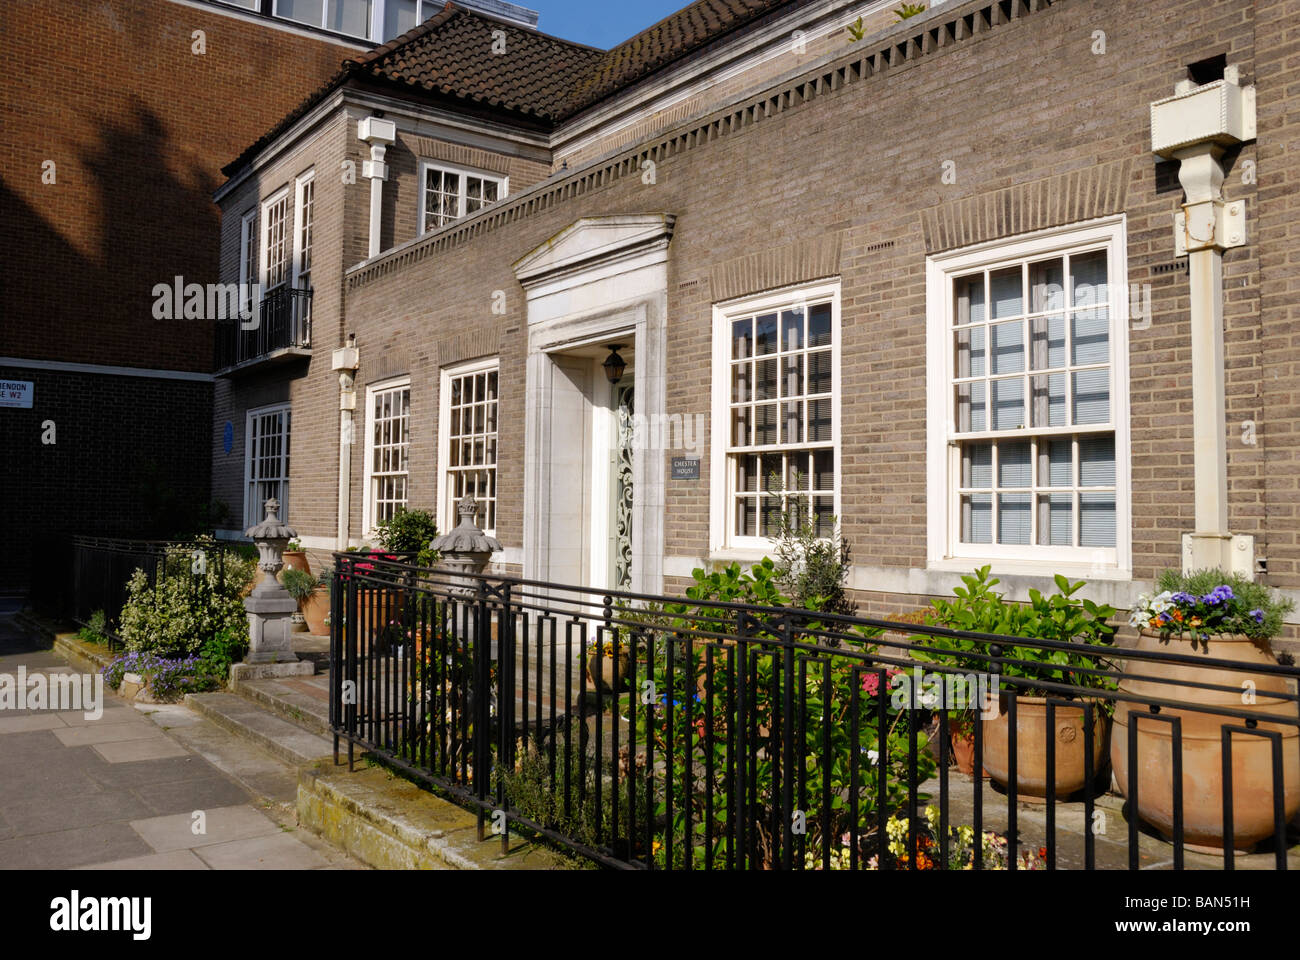 Chester House the former home of architect Sir Giles Gilbert Scott Clarendon Place Bayswater London W2 - Stock Image